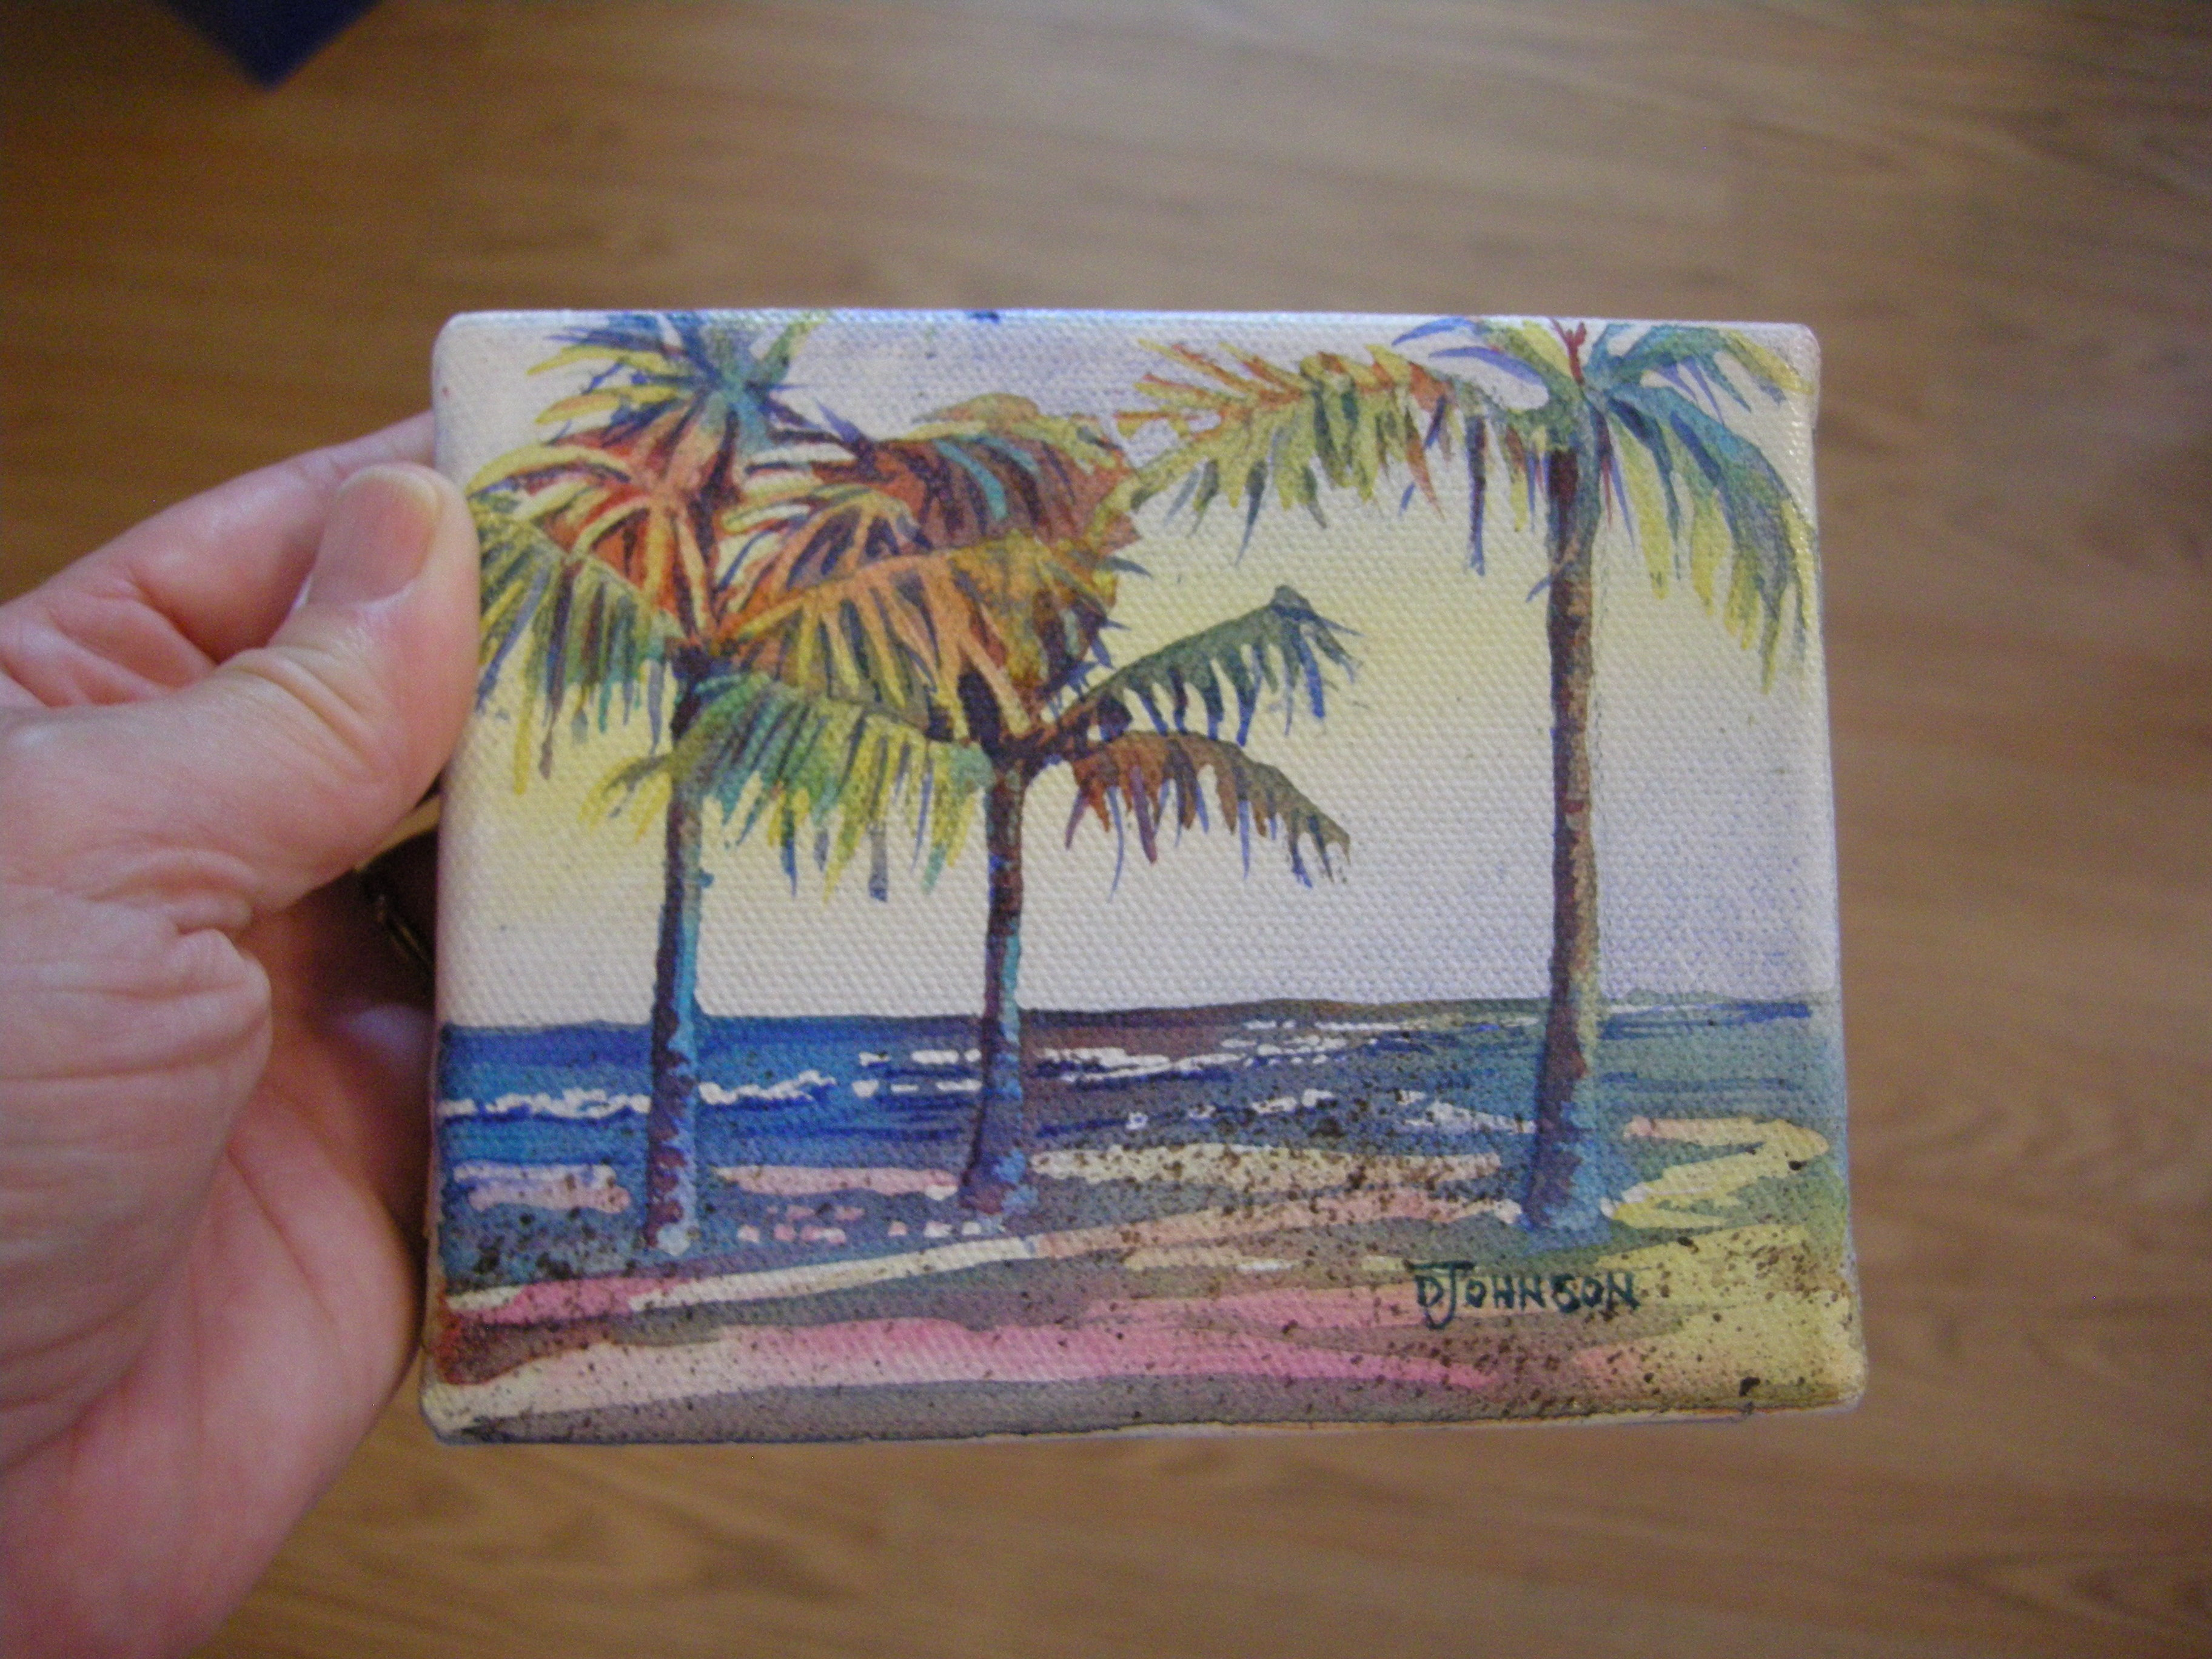 Luxurious Palms Debbie Waldorf Johnson Watercolor Pencils On Canvas Watercolor On Canvas Board Miniature Watercolor On Canvas Miniature Watercolor On Canvas inspiration Watercolor On Canvas